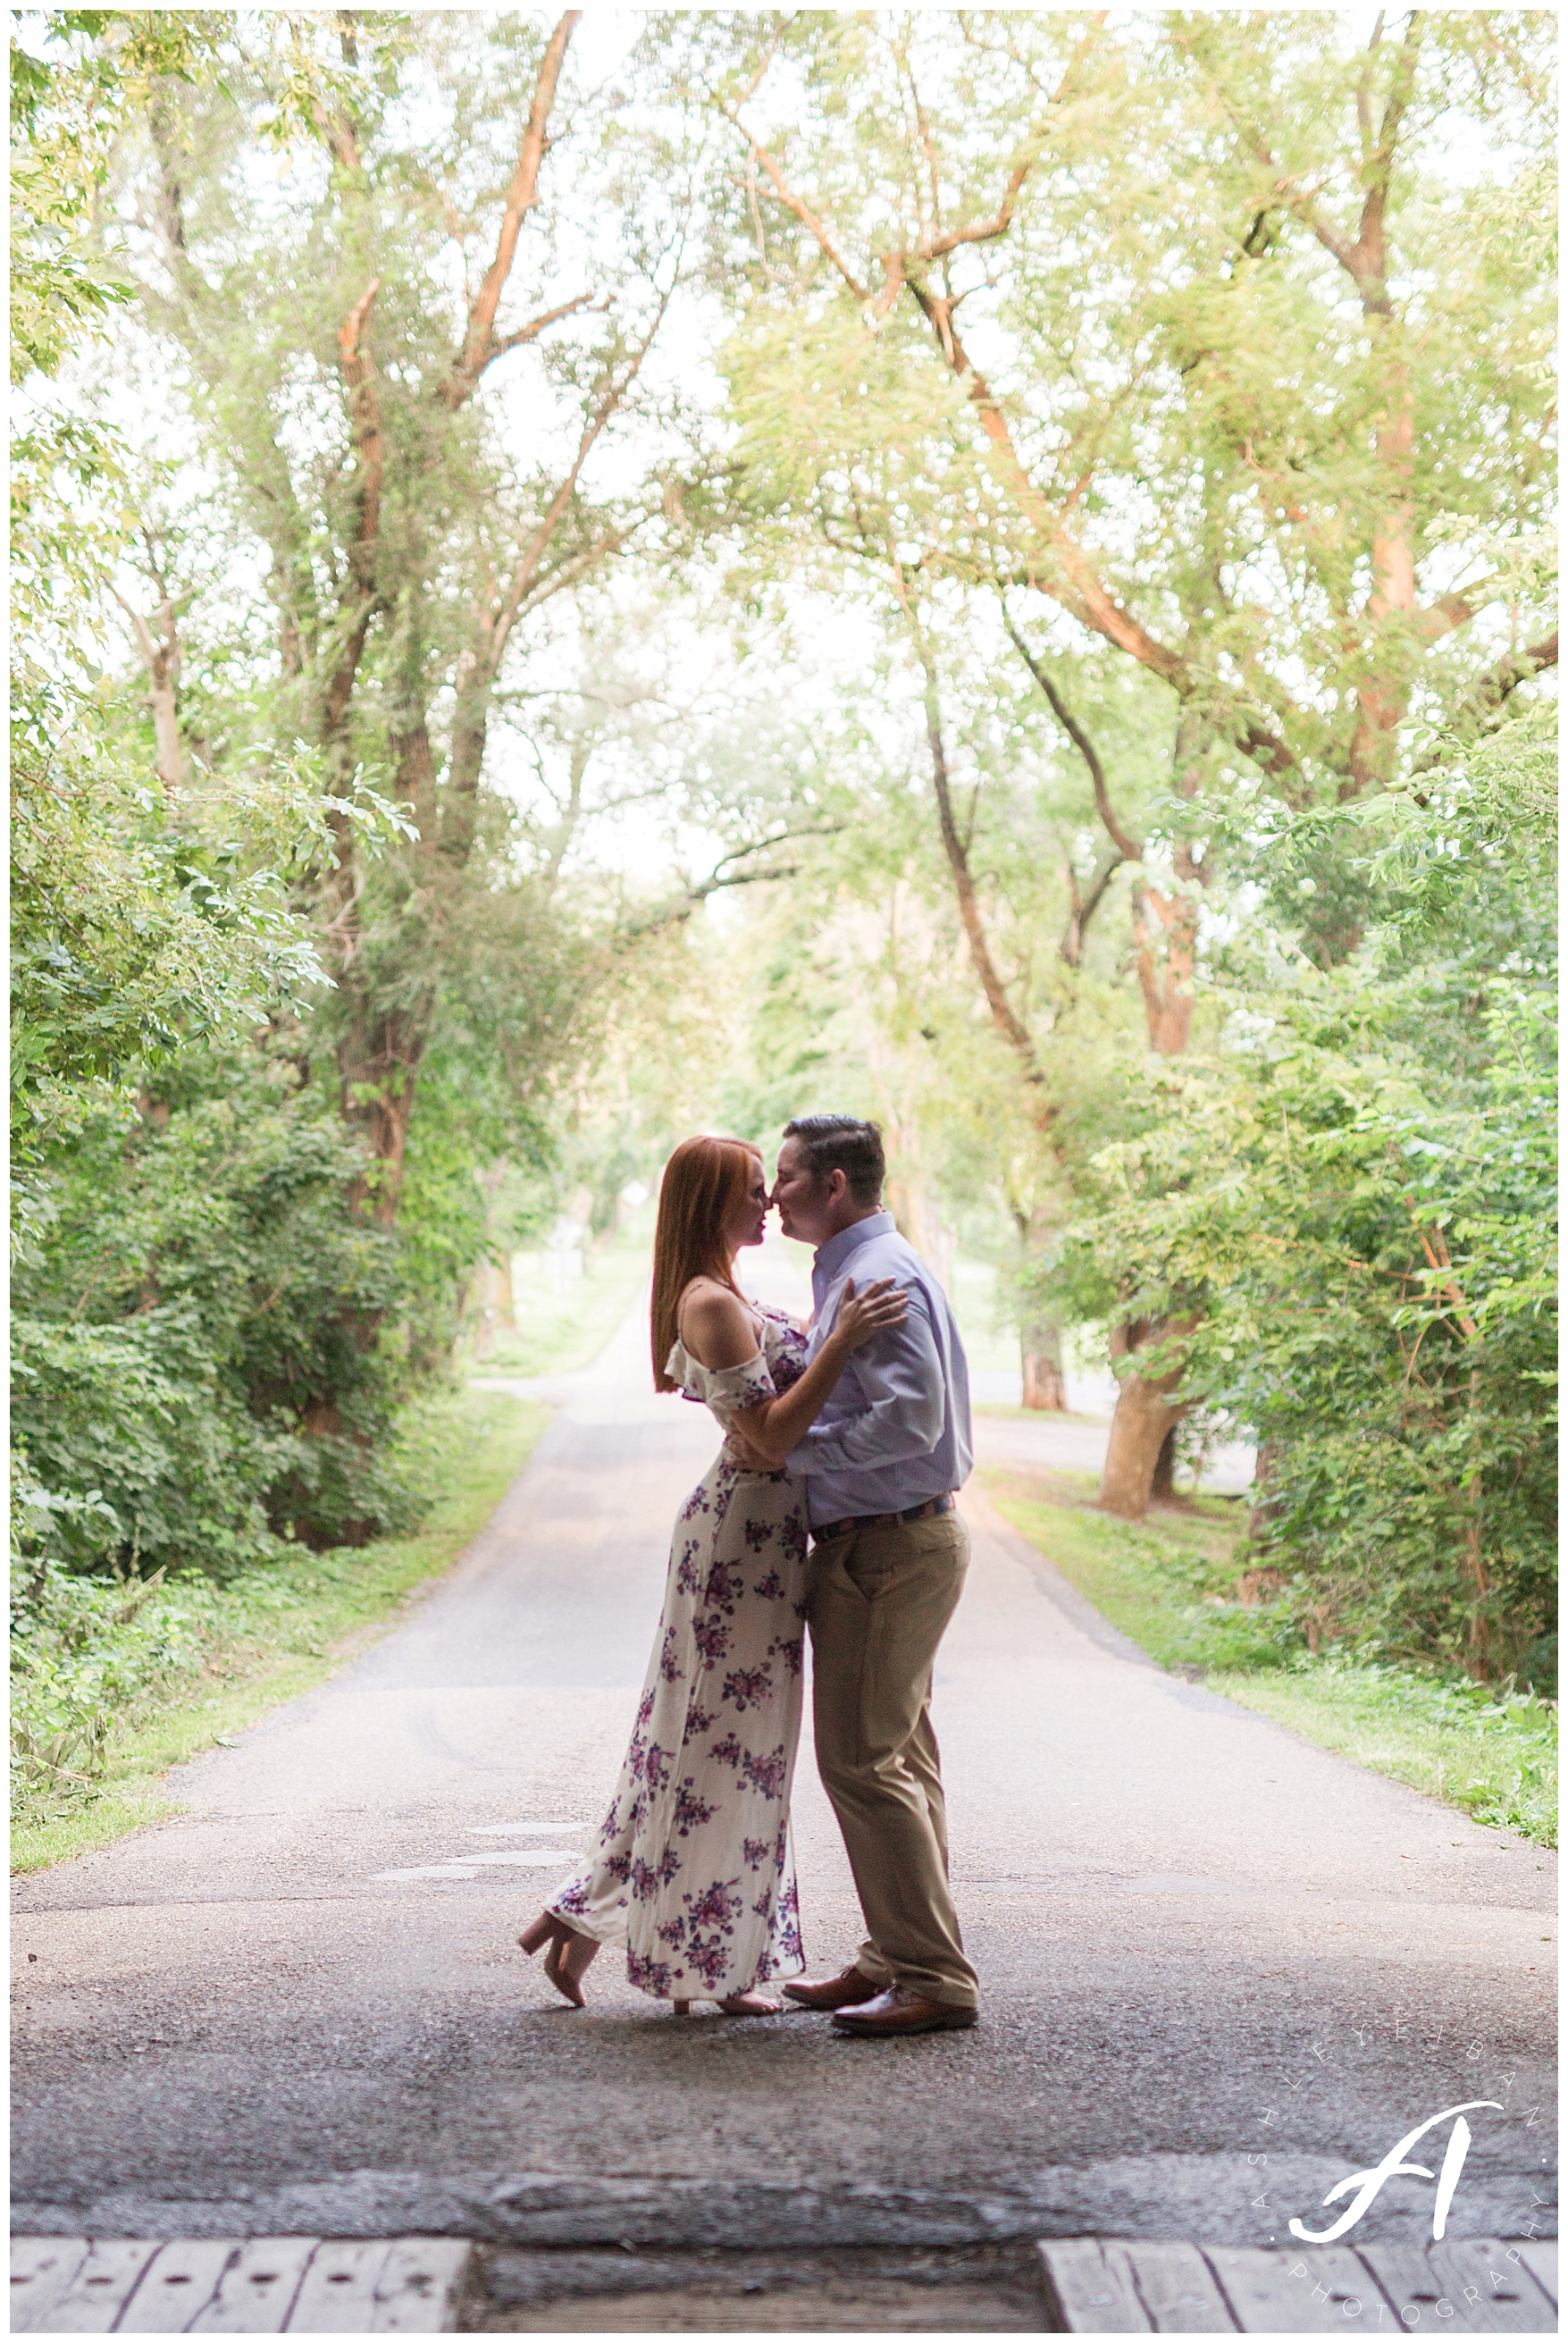 Virginia Wedding and Engagement Photographer || Lynchburg Virginia Wedding || Ashley Eiban Photography || www.ashleyeiban.com